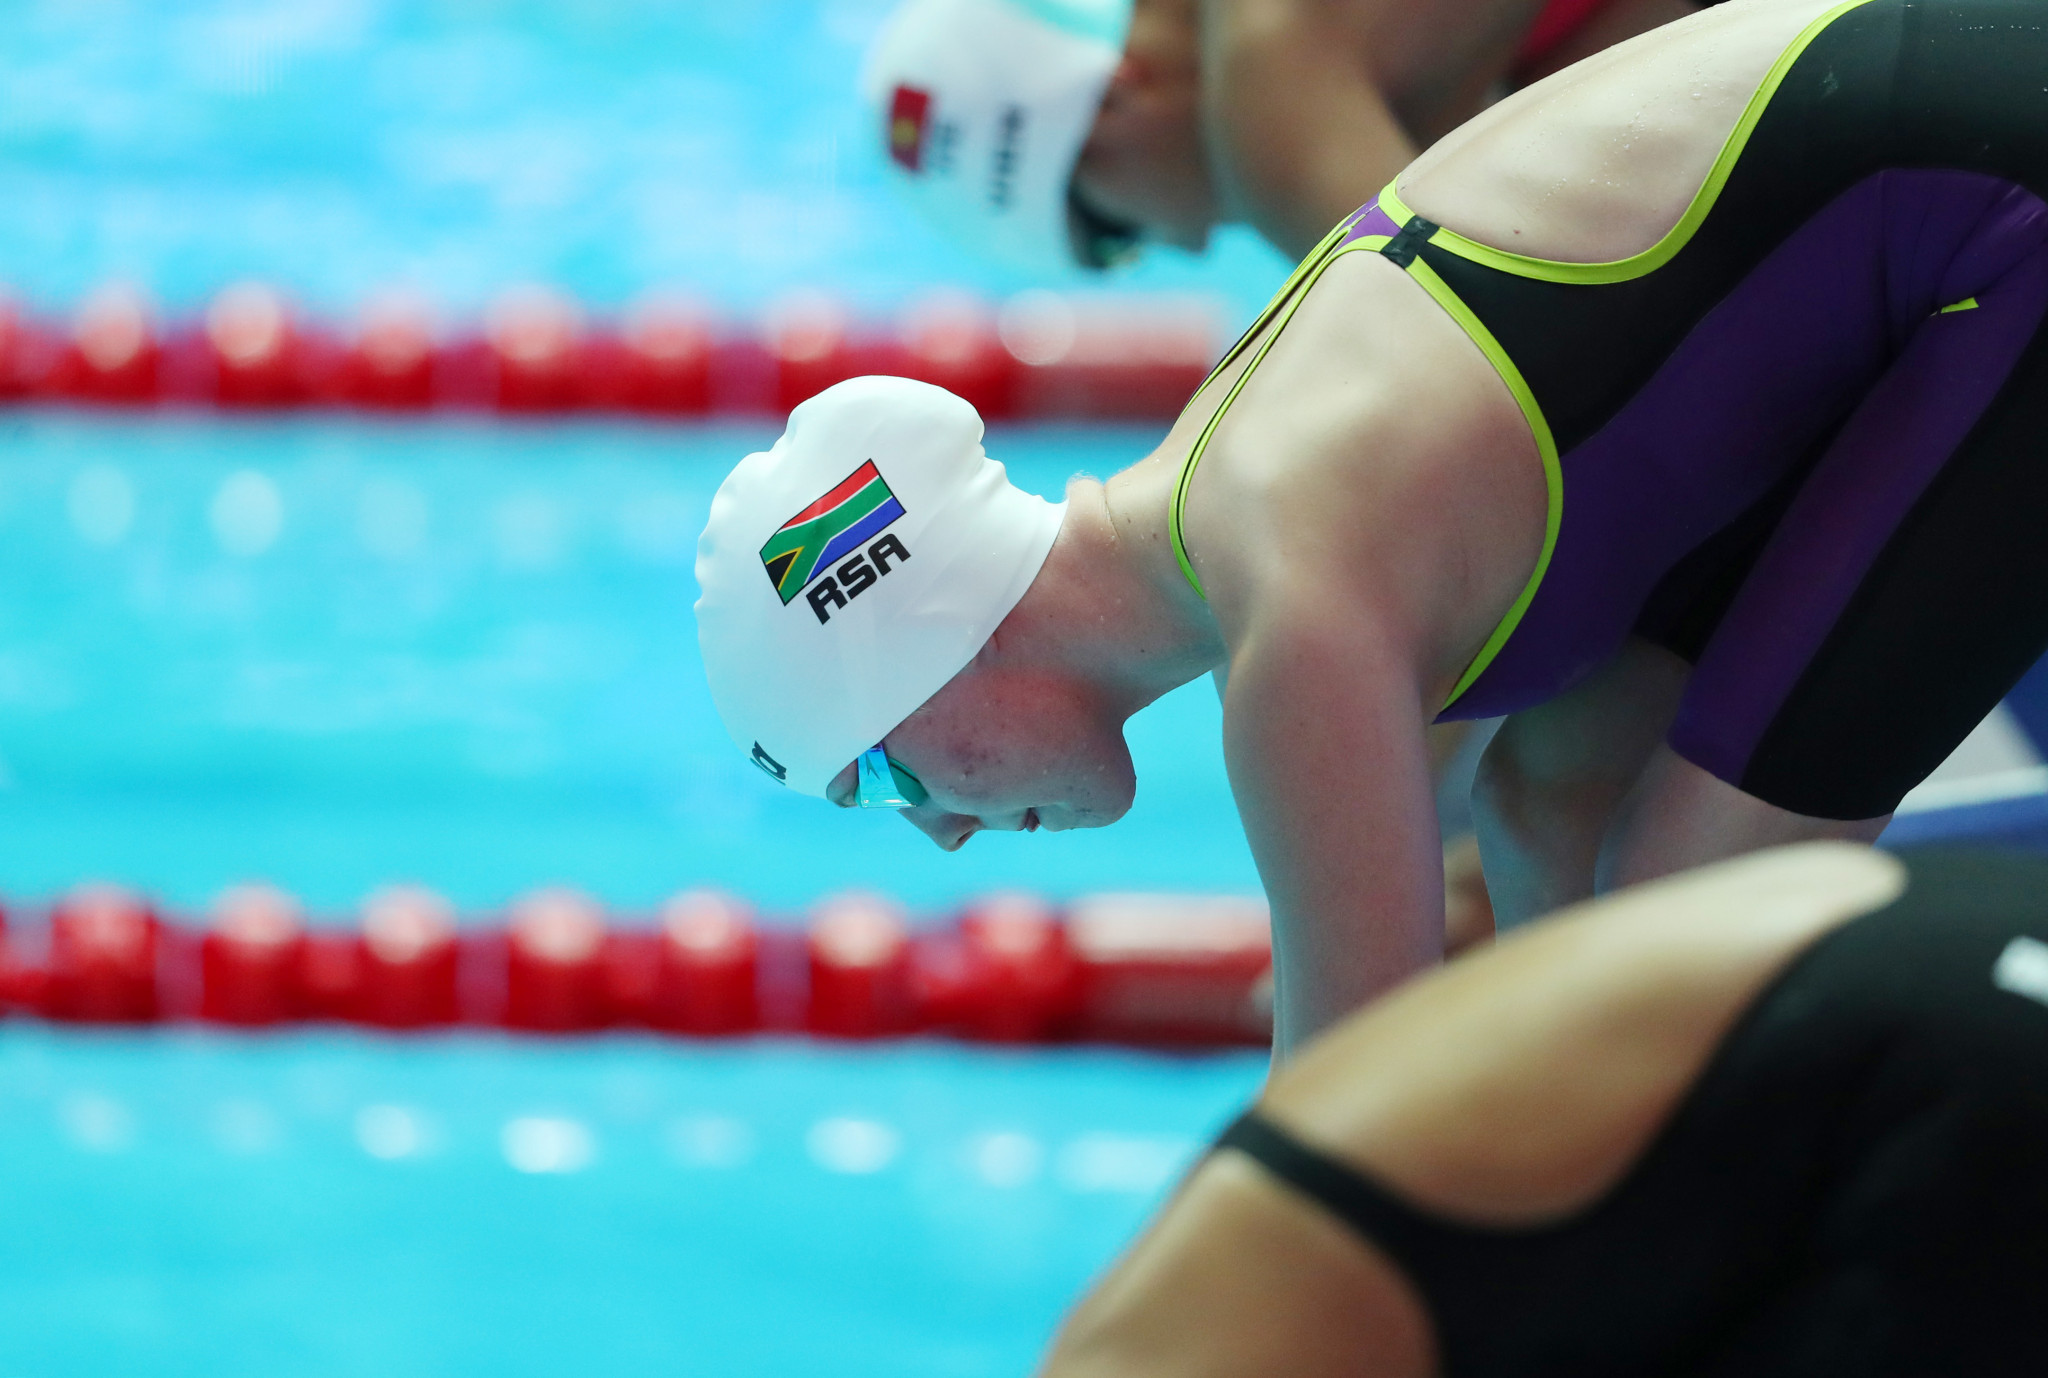 South Africa hail African Games swimming performance despite winning fewer medals